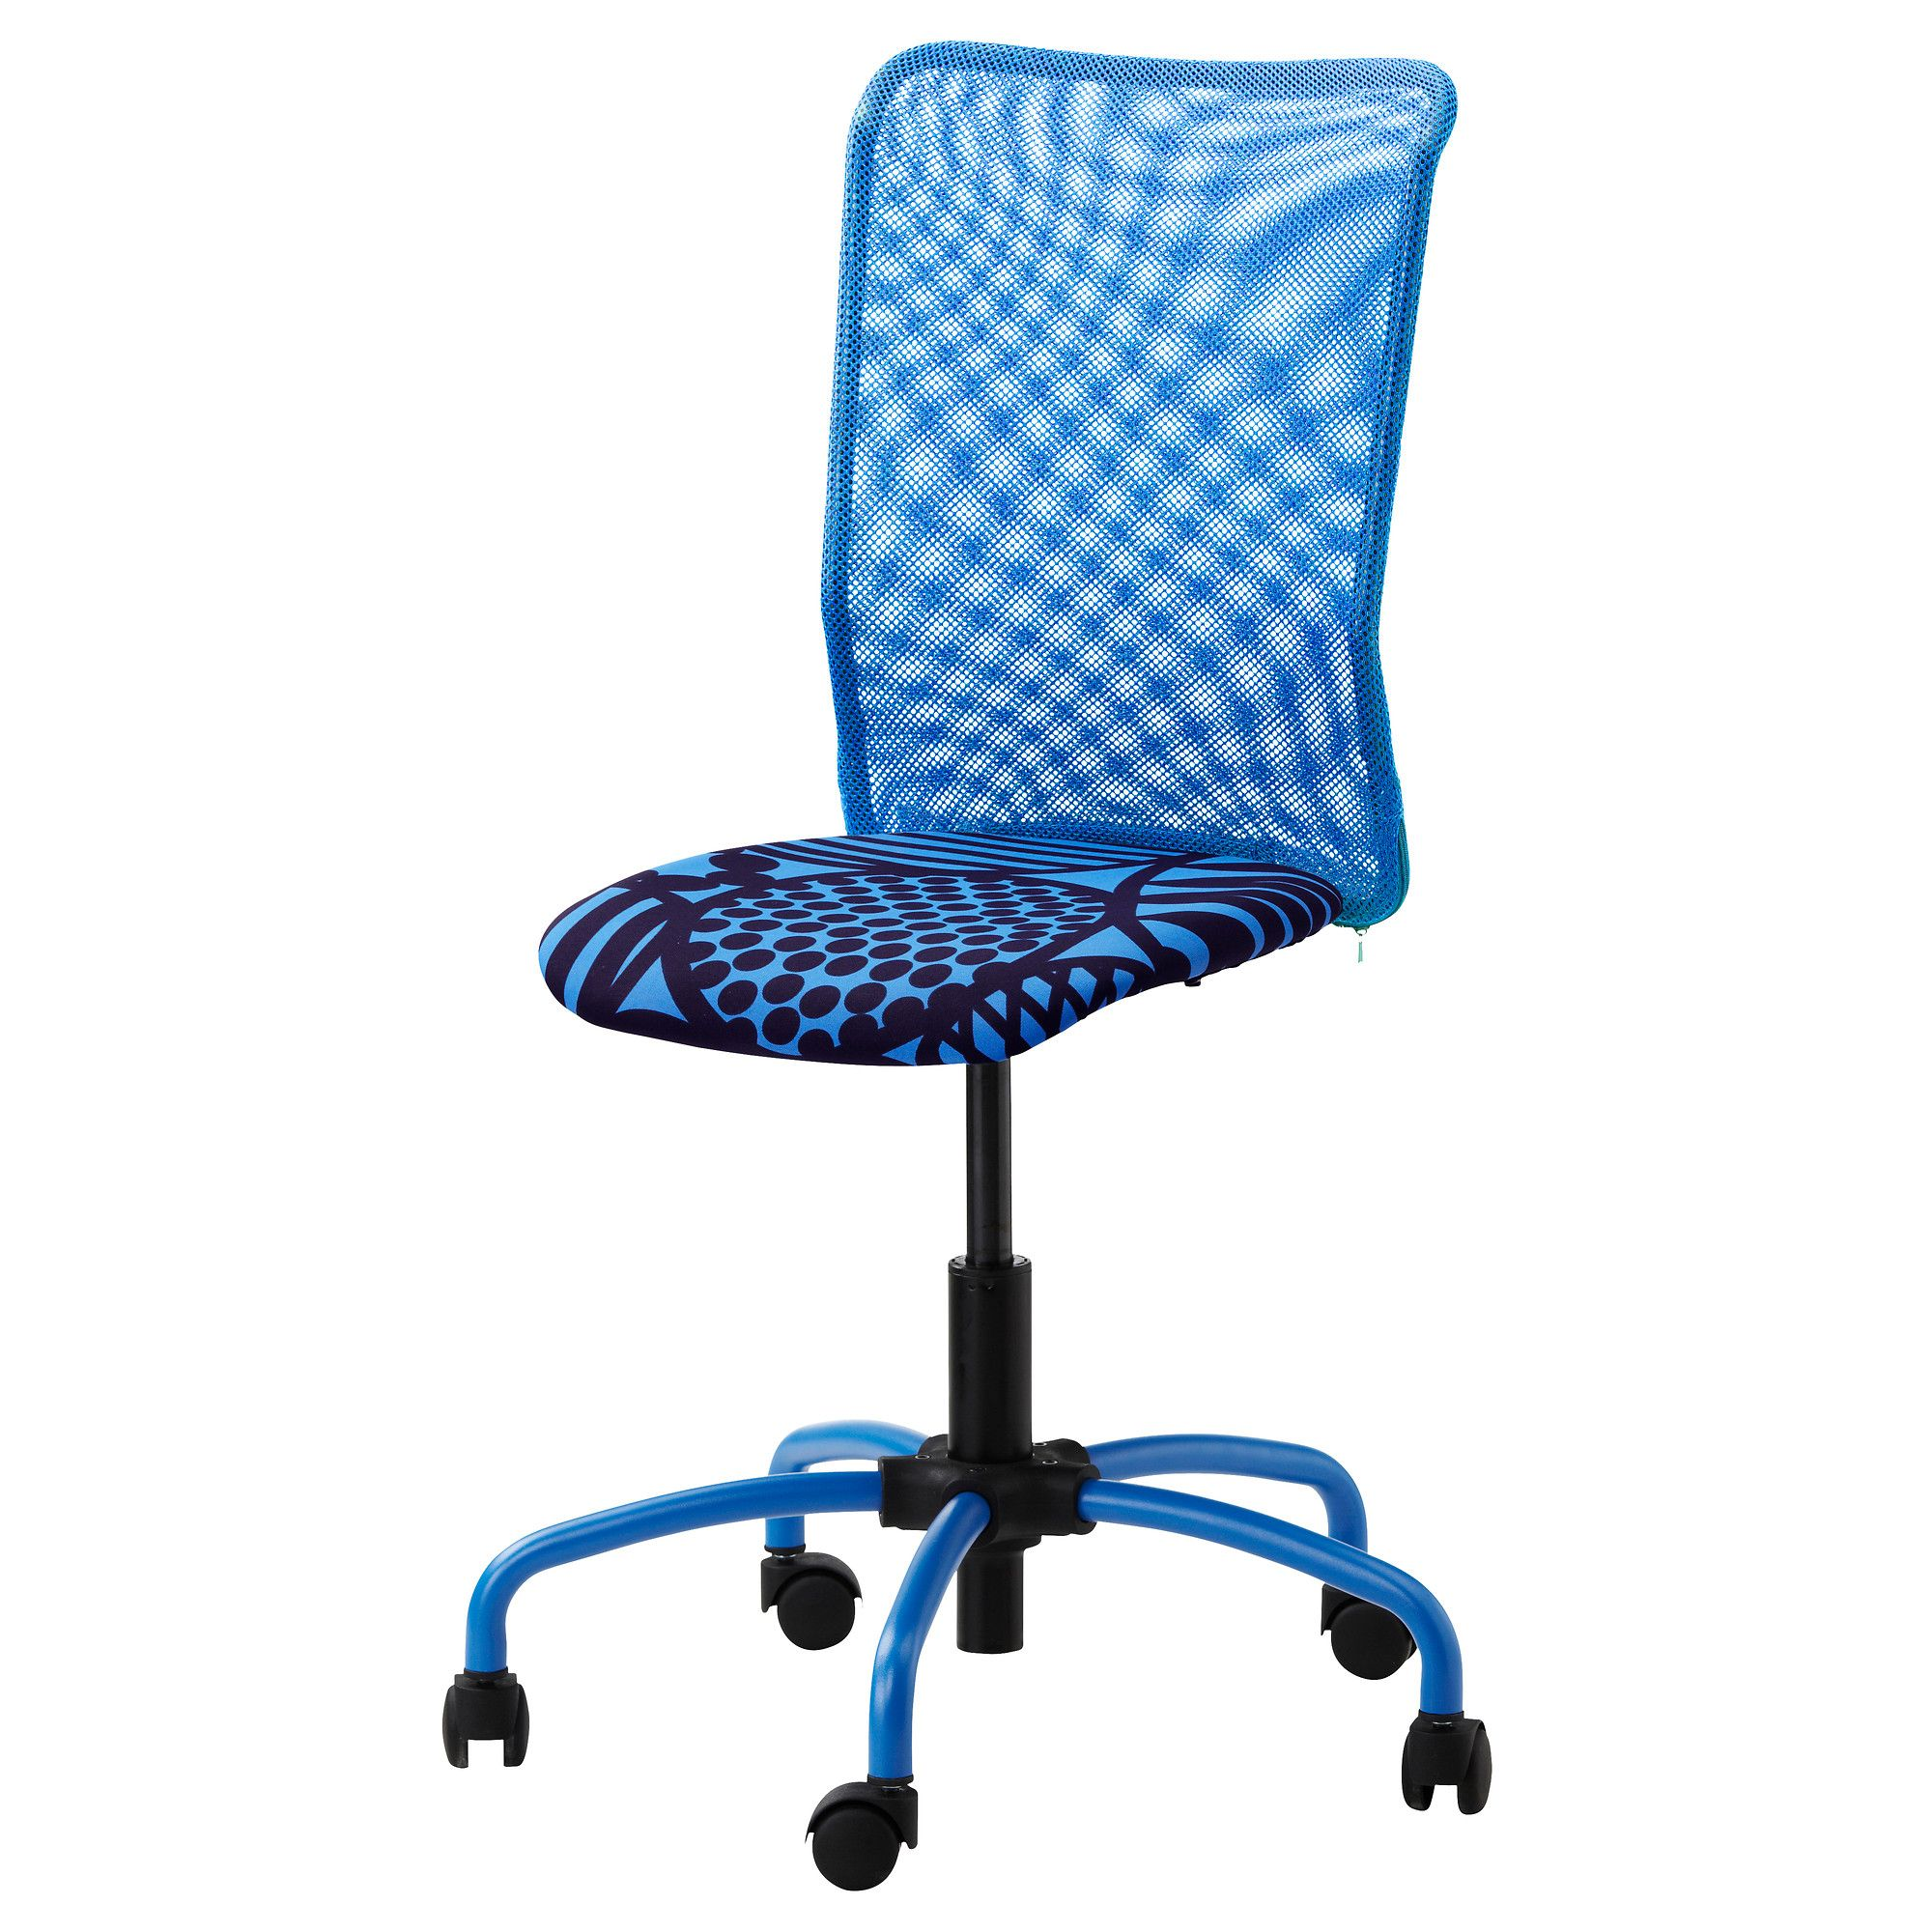 desk chair leans forward high chairs for toddlers ikea torbjorn swivel kvarnatorp blue you sit comfortably since the is adjustable in height sloping seat provides a comfortable sitting position when leaning